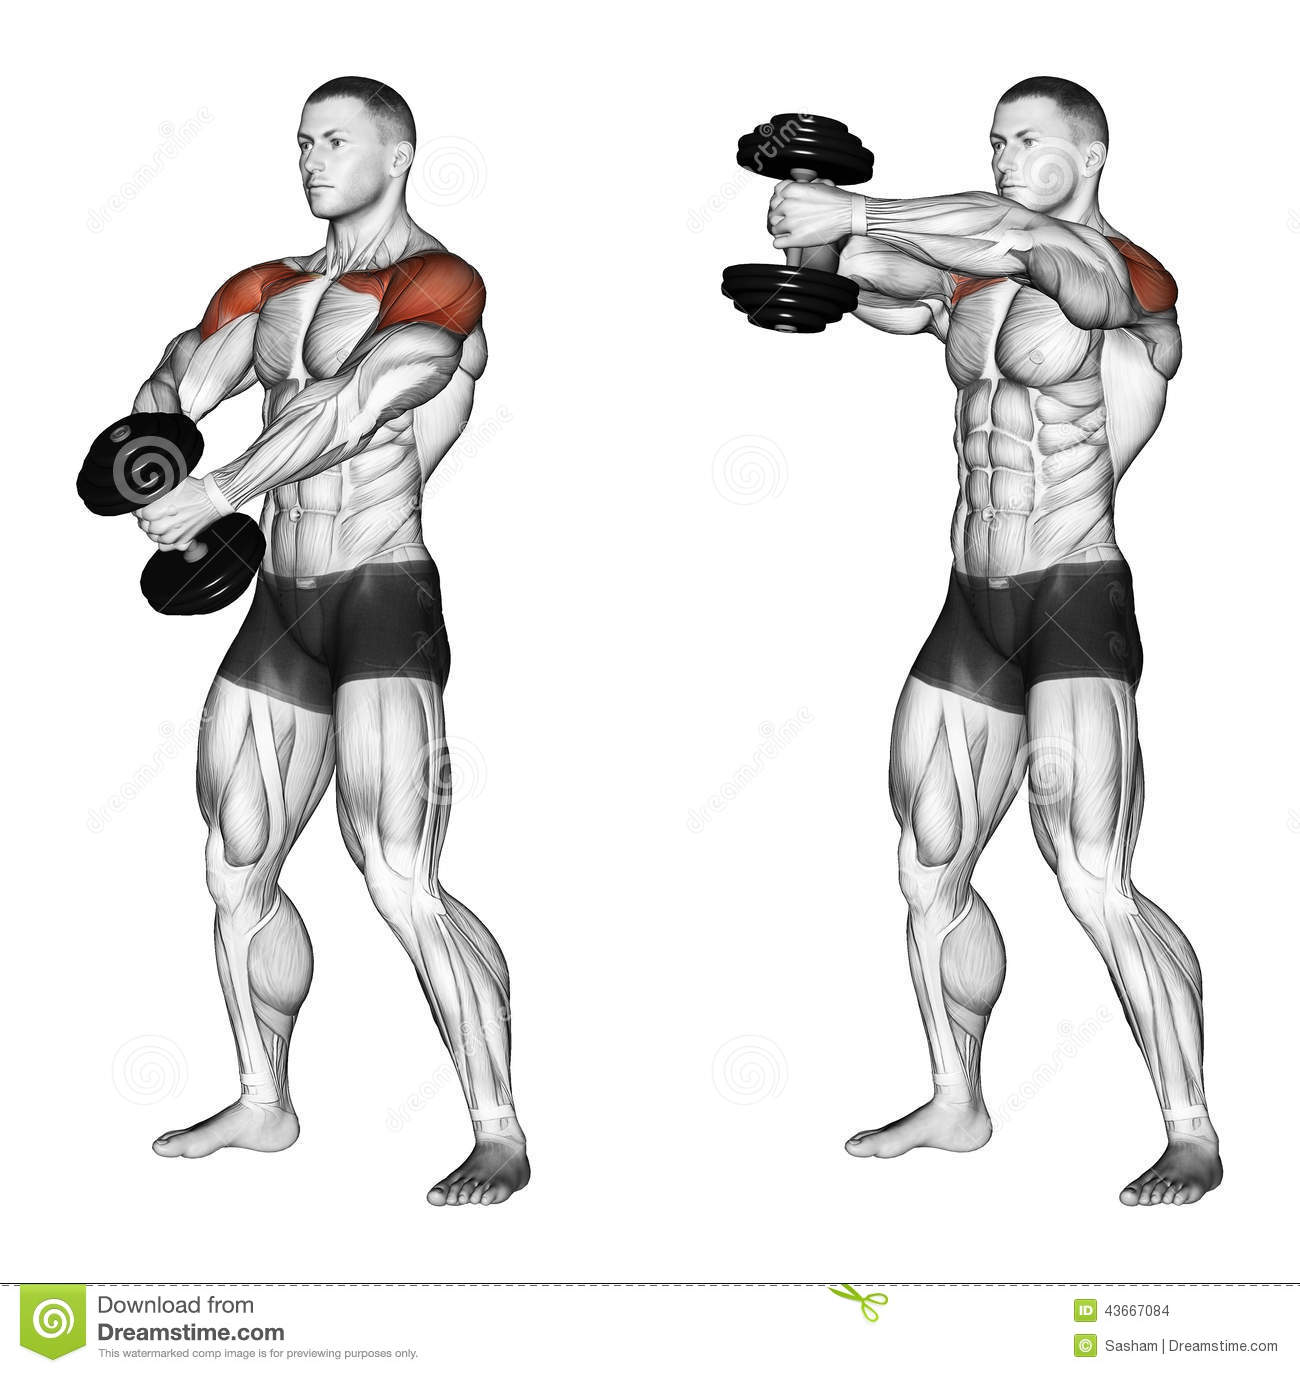 list of dumbbell exercises by muscle group dumbbell - HD1300×1373